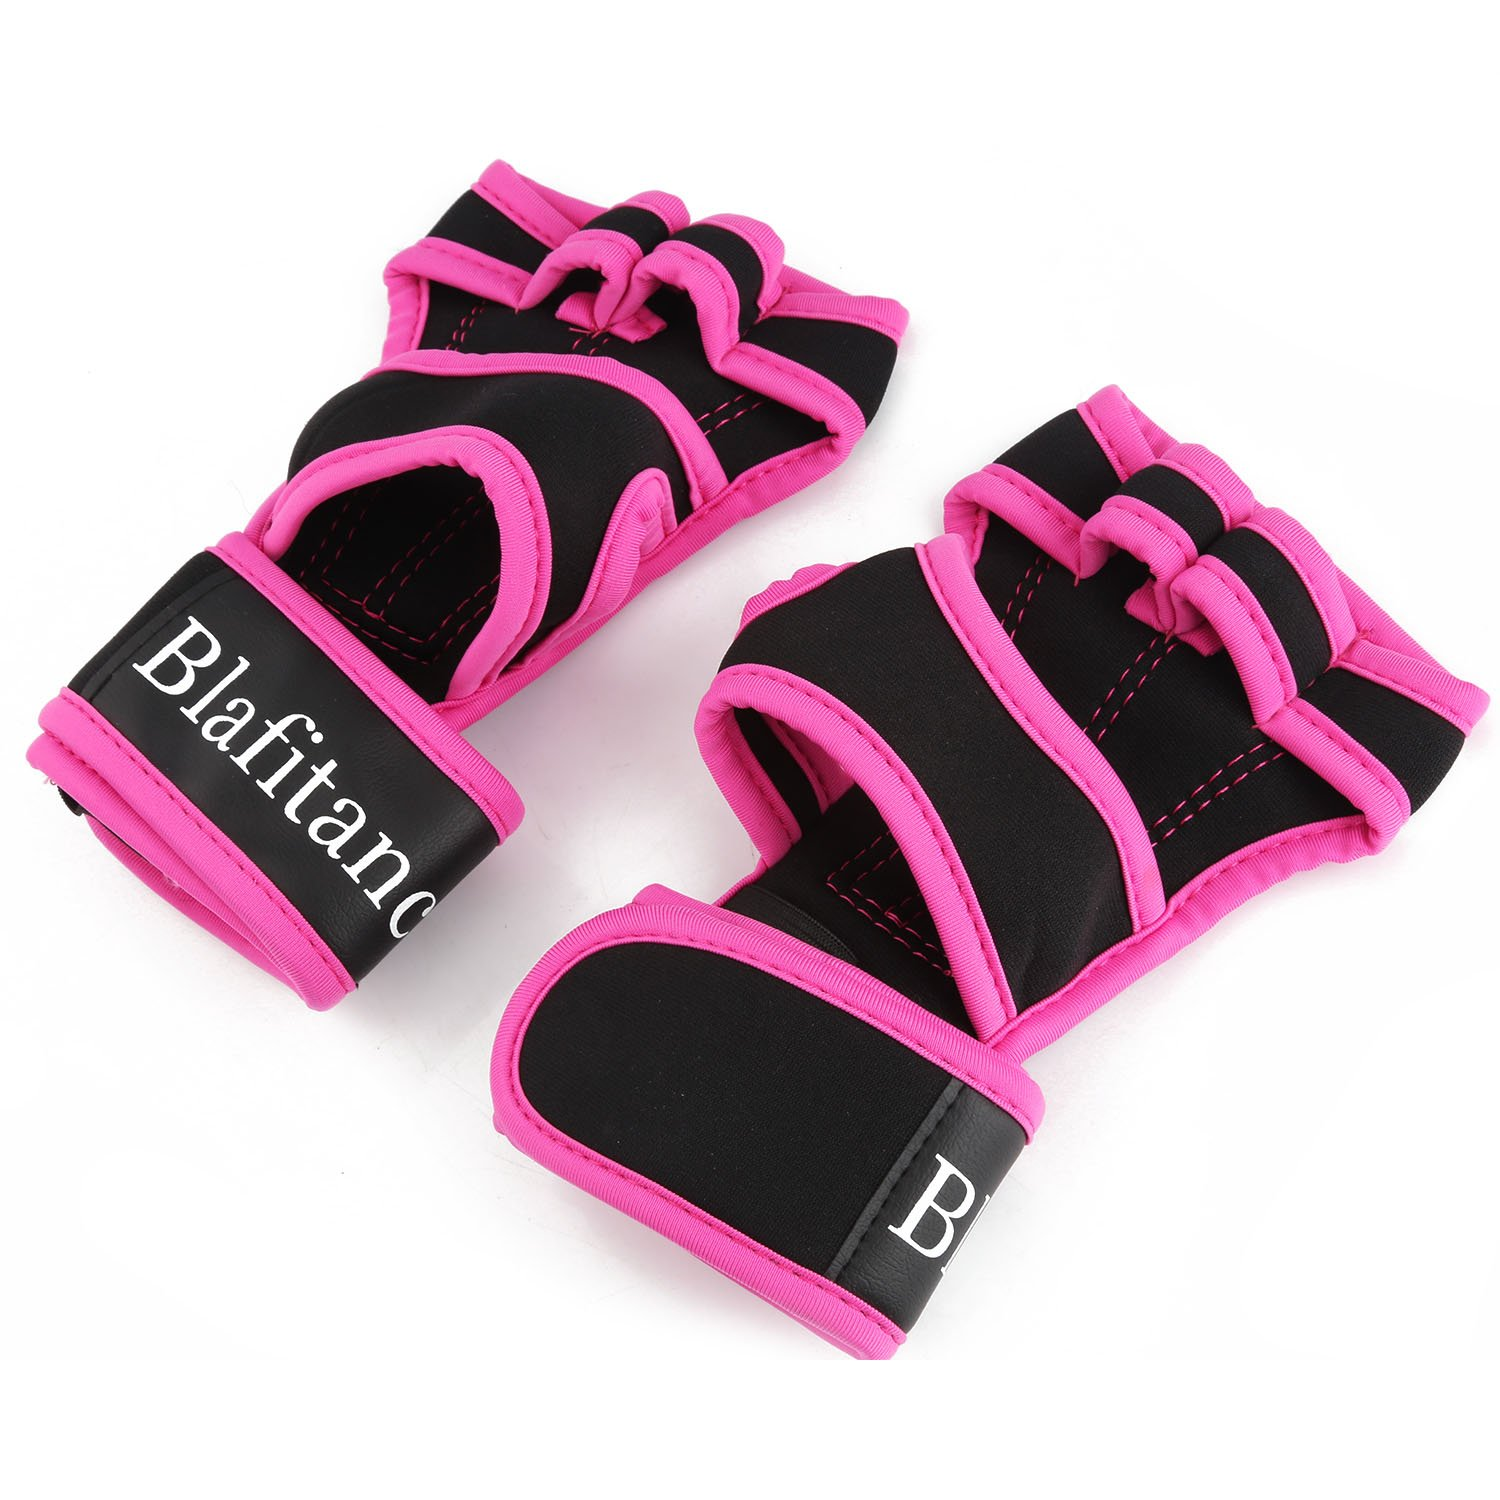 Cross Training Gloves with Wrist Support for WODs,Gym Workout, Pull Ups, Weightlifting & Fitness, Gloves with Full Palm Protection & Extra Grip, No Calluses, Suits Men & Women (Pink, Medium)